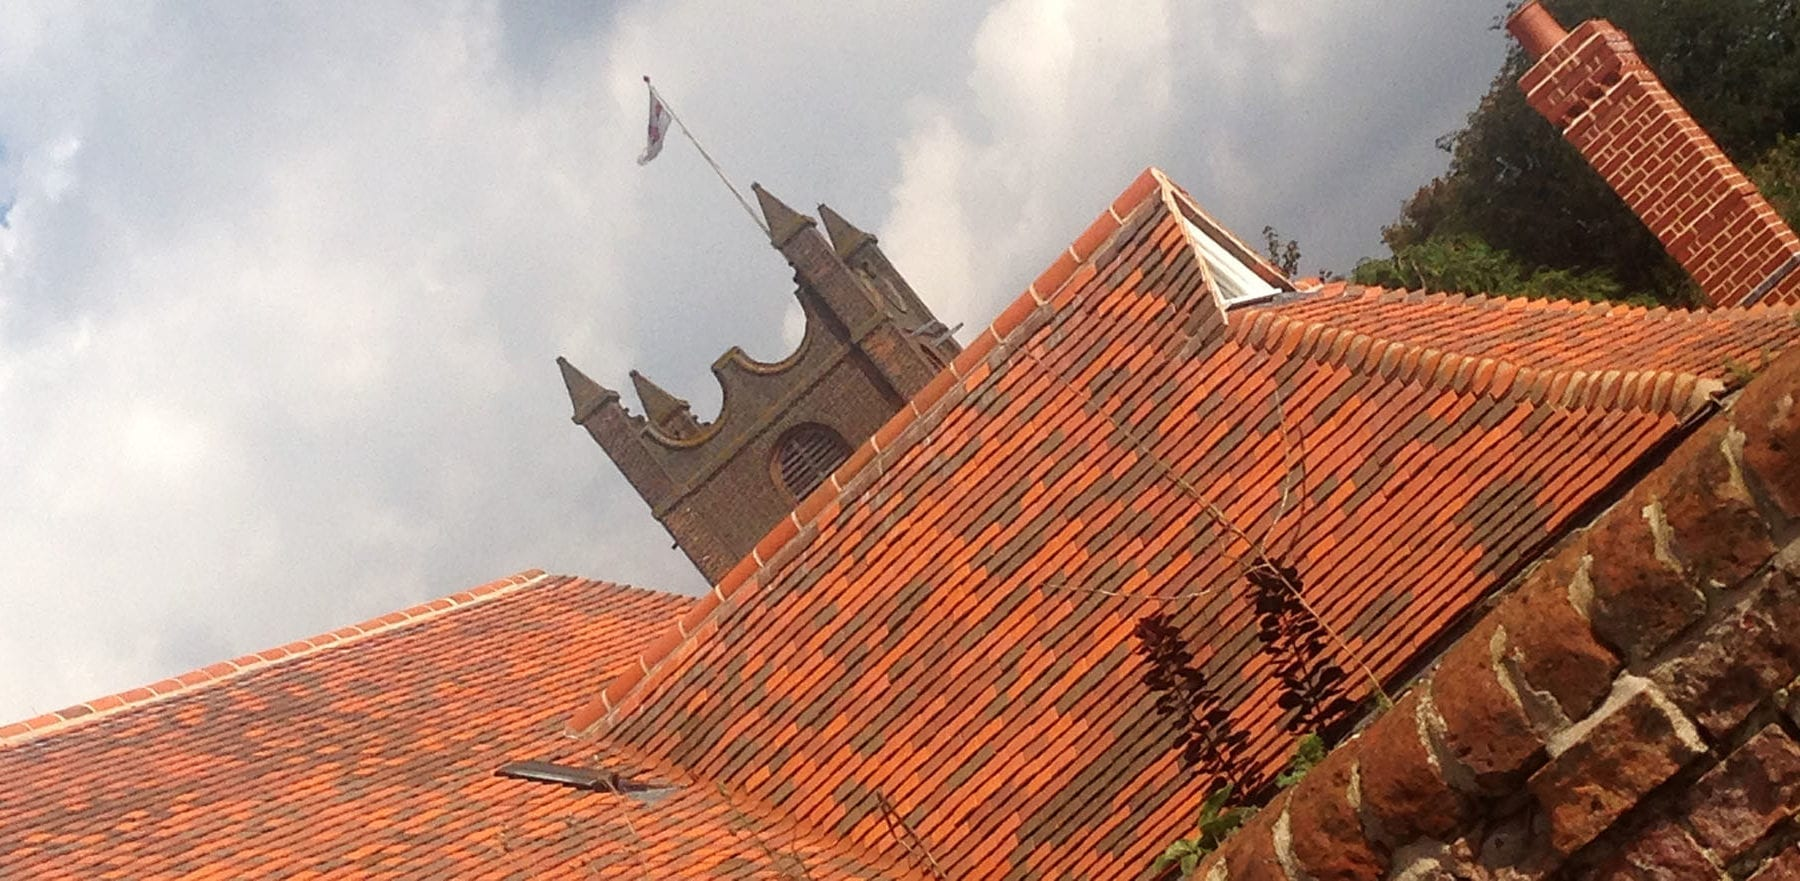 Lifestiles - Handcrafted Tilehurst Clay Roof Tiles - Toppesfield, England 2